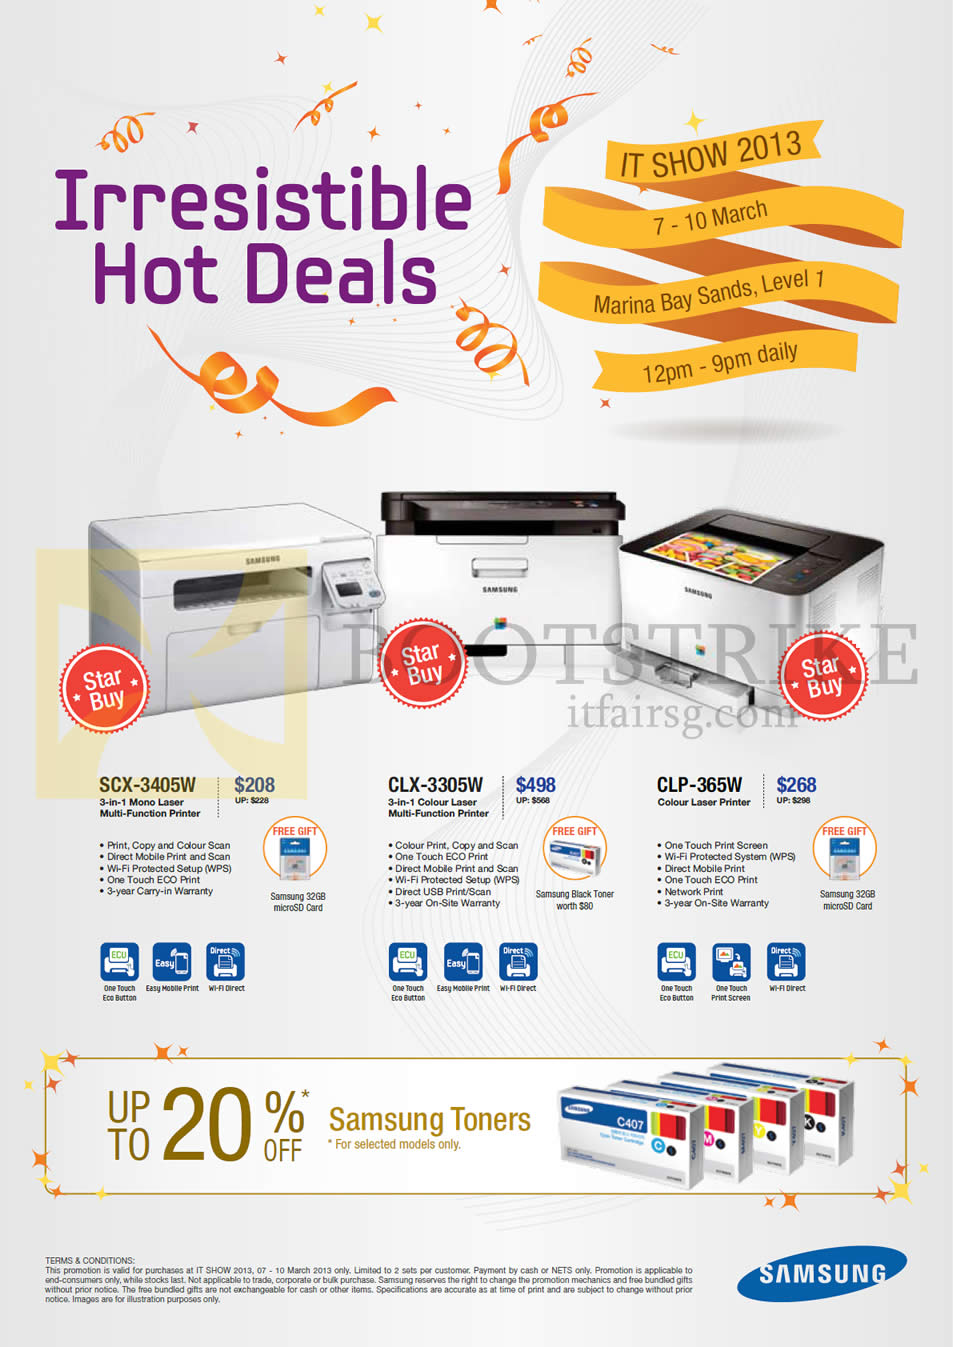 IT SHOW 2013 price list image brochure of Samsung Printers Laser SCX-3405W, CLX-3305W, CLP-365W